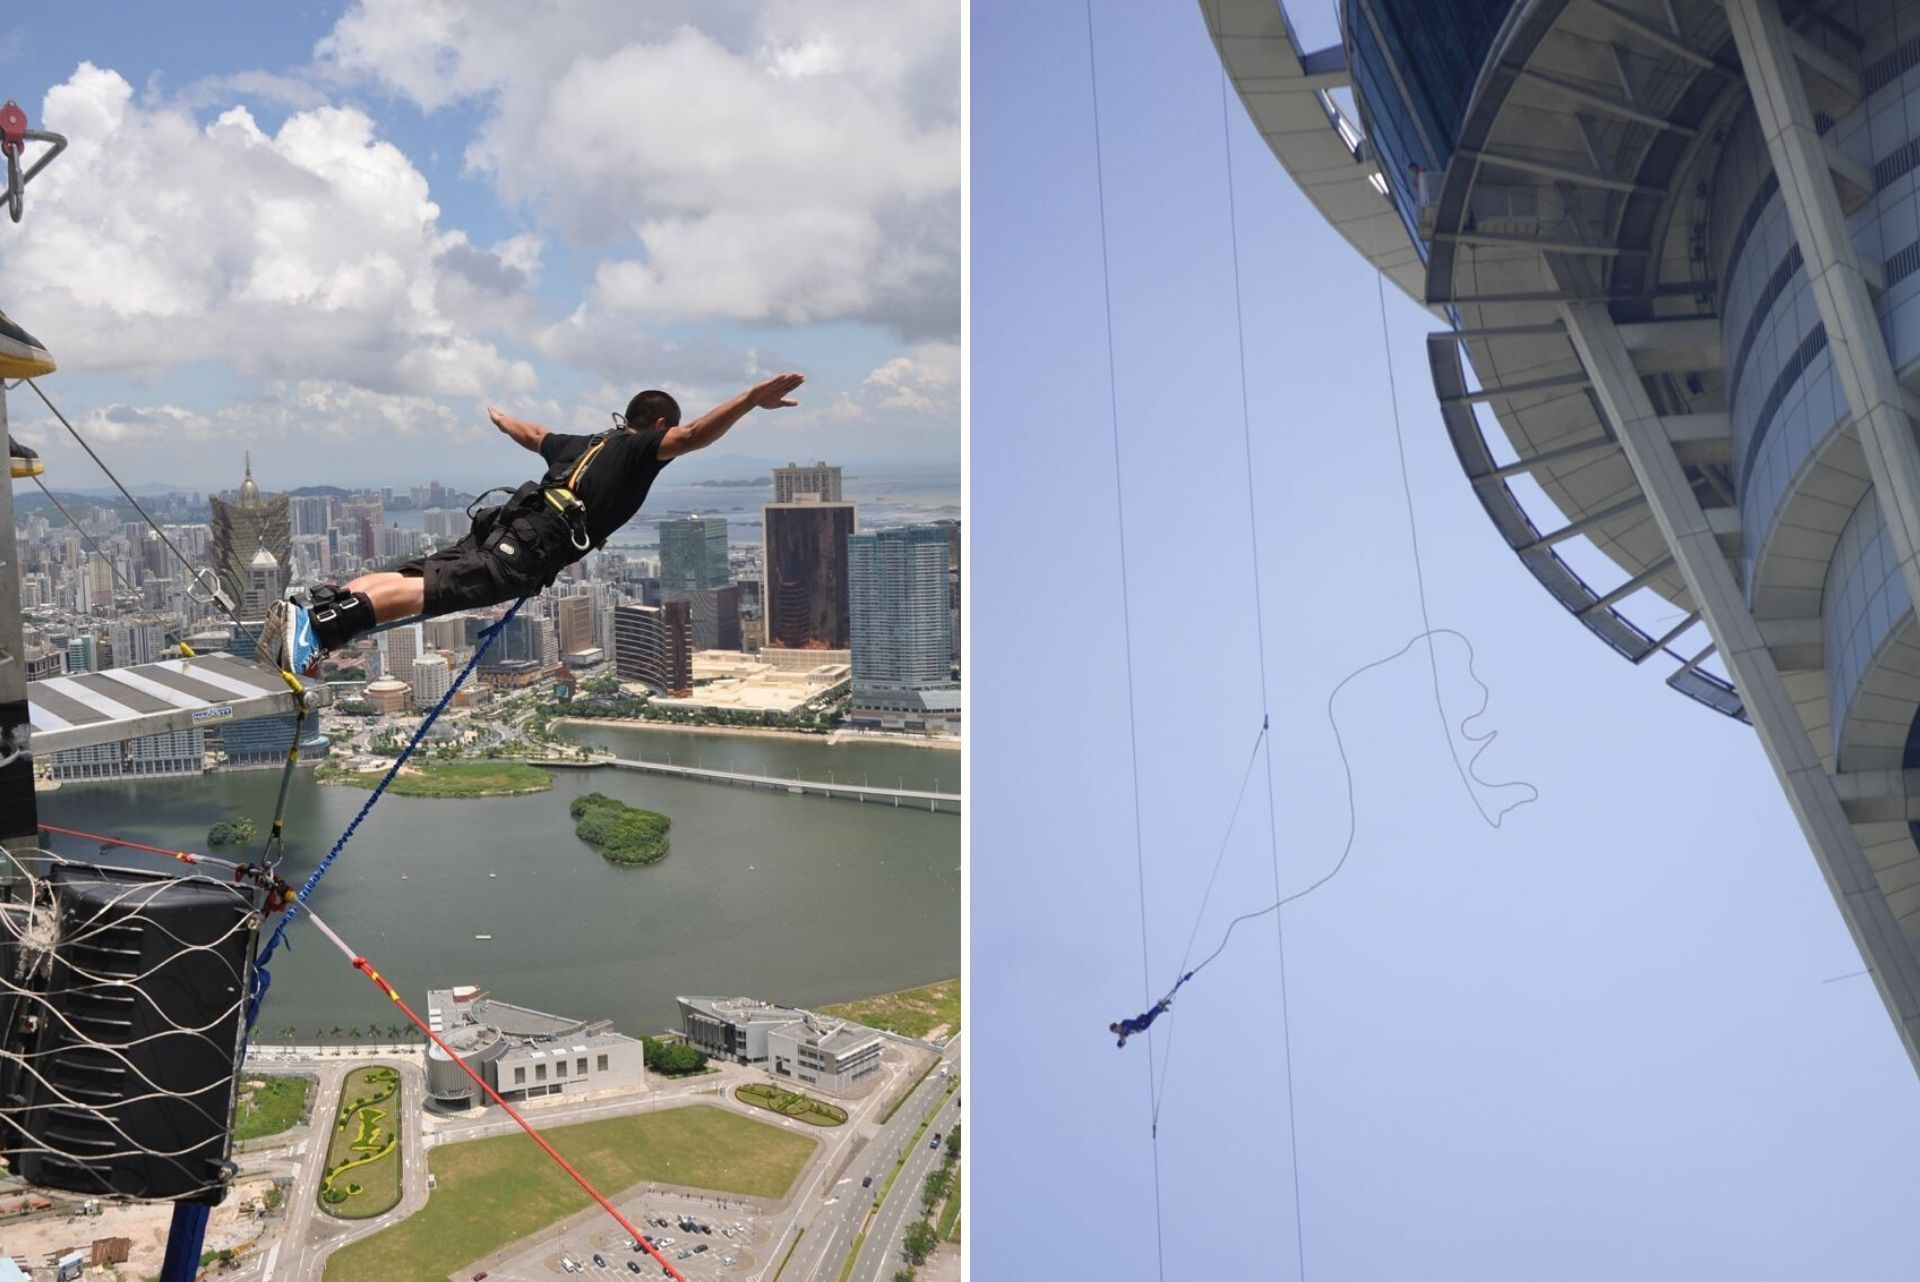 man-bungying-off-tower-highest-bungee-jump-in-the-world-macau-china